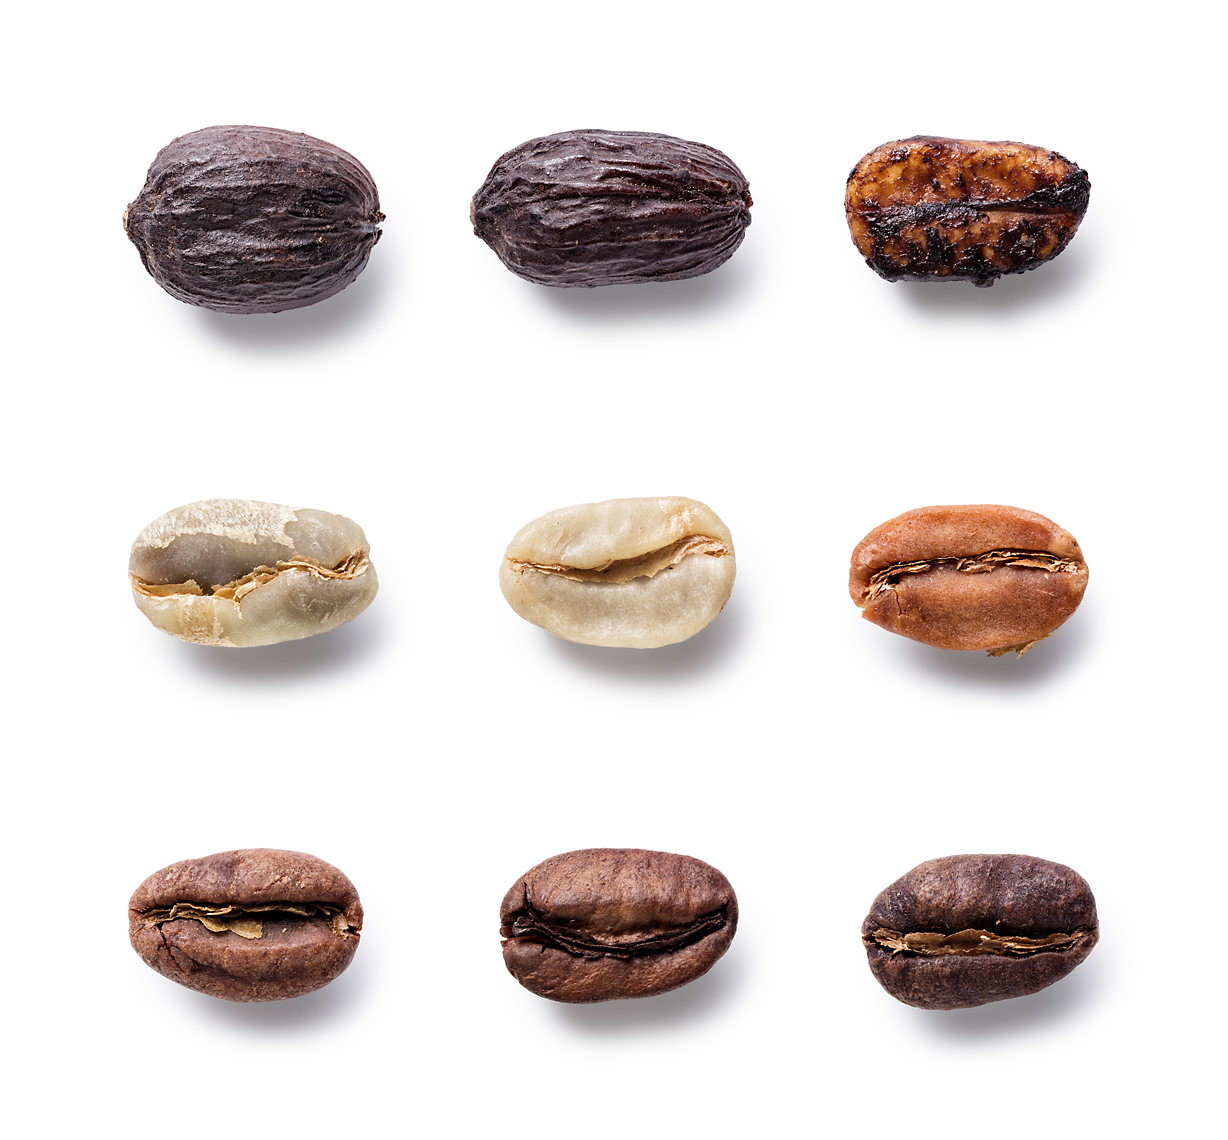 Coffee Bean evolution